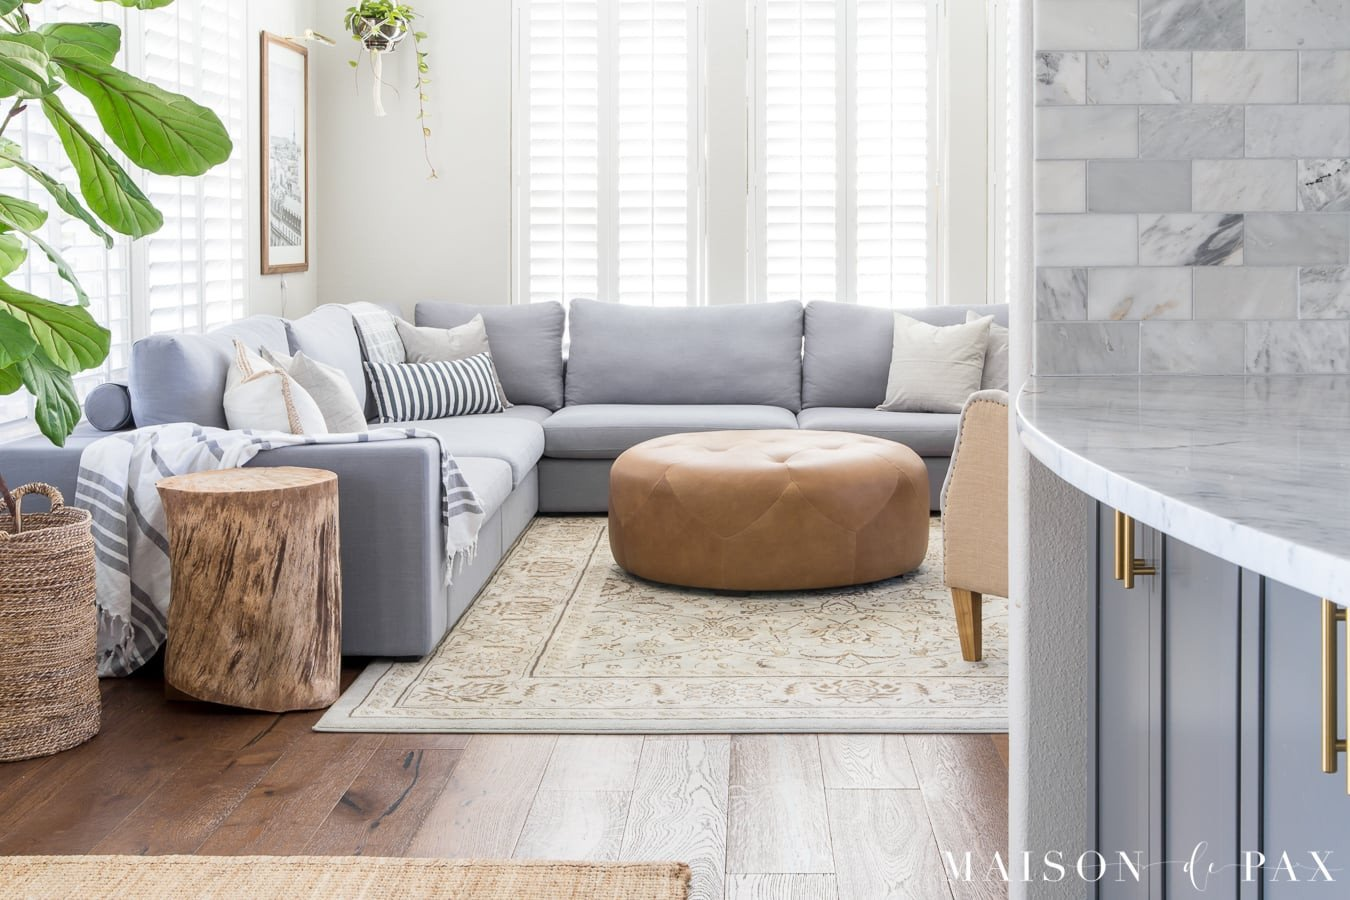 Designing a Small Living Room with a Sectional Maison de Pax